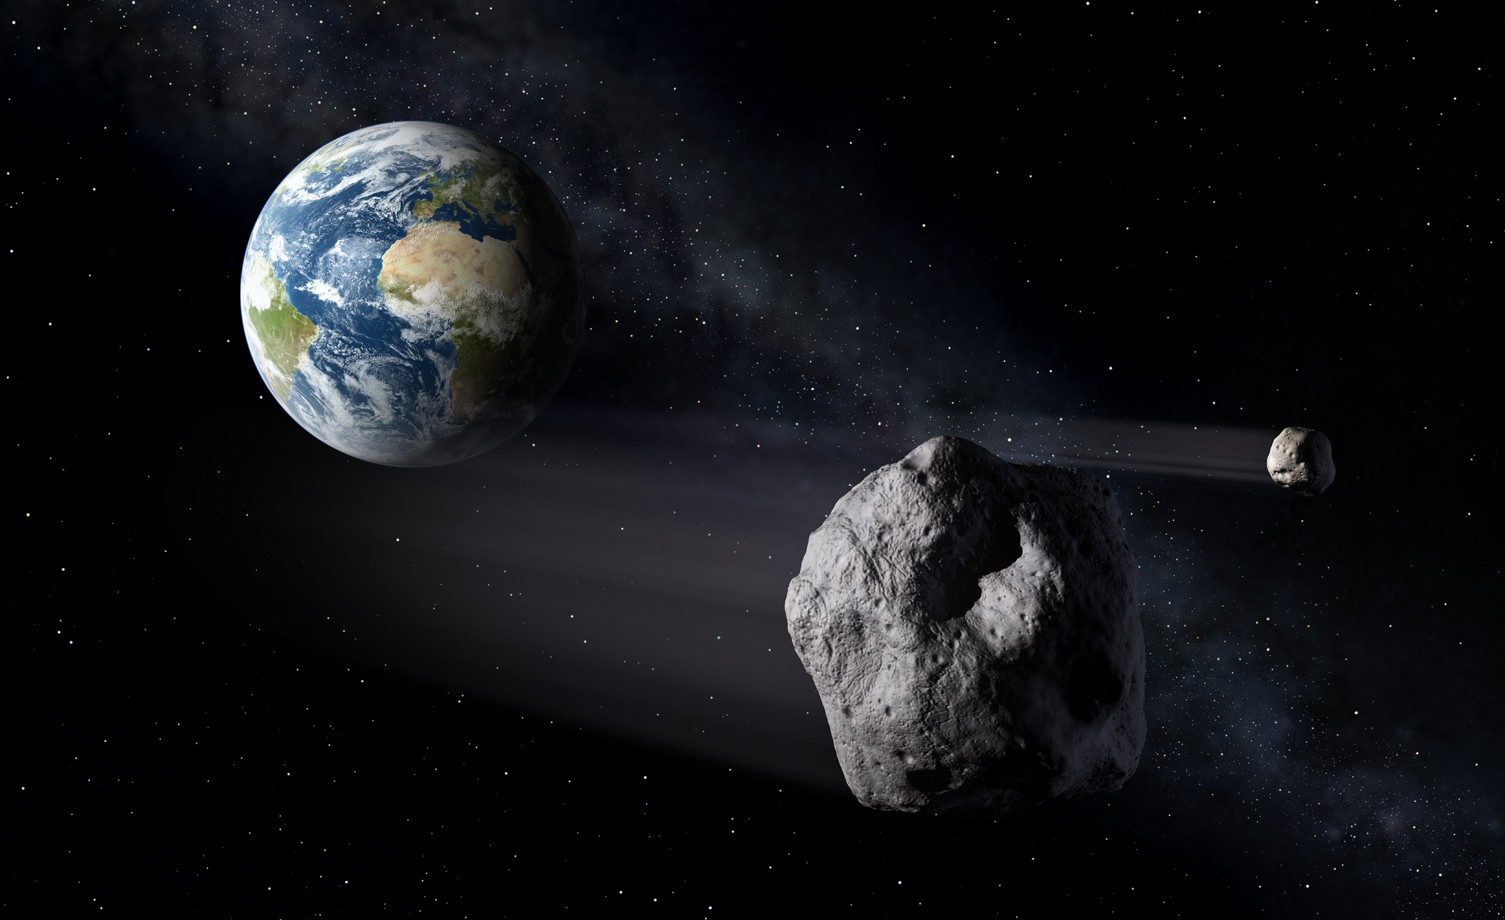 asteroid or comet weird blue space rock phaethon gets a - HD1505×920